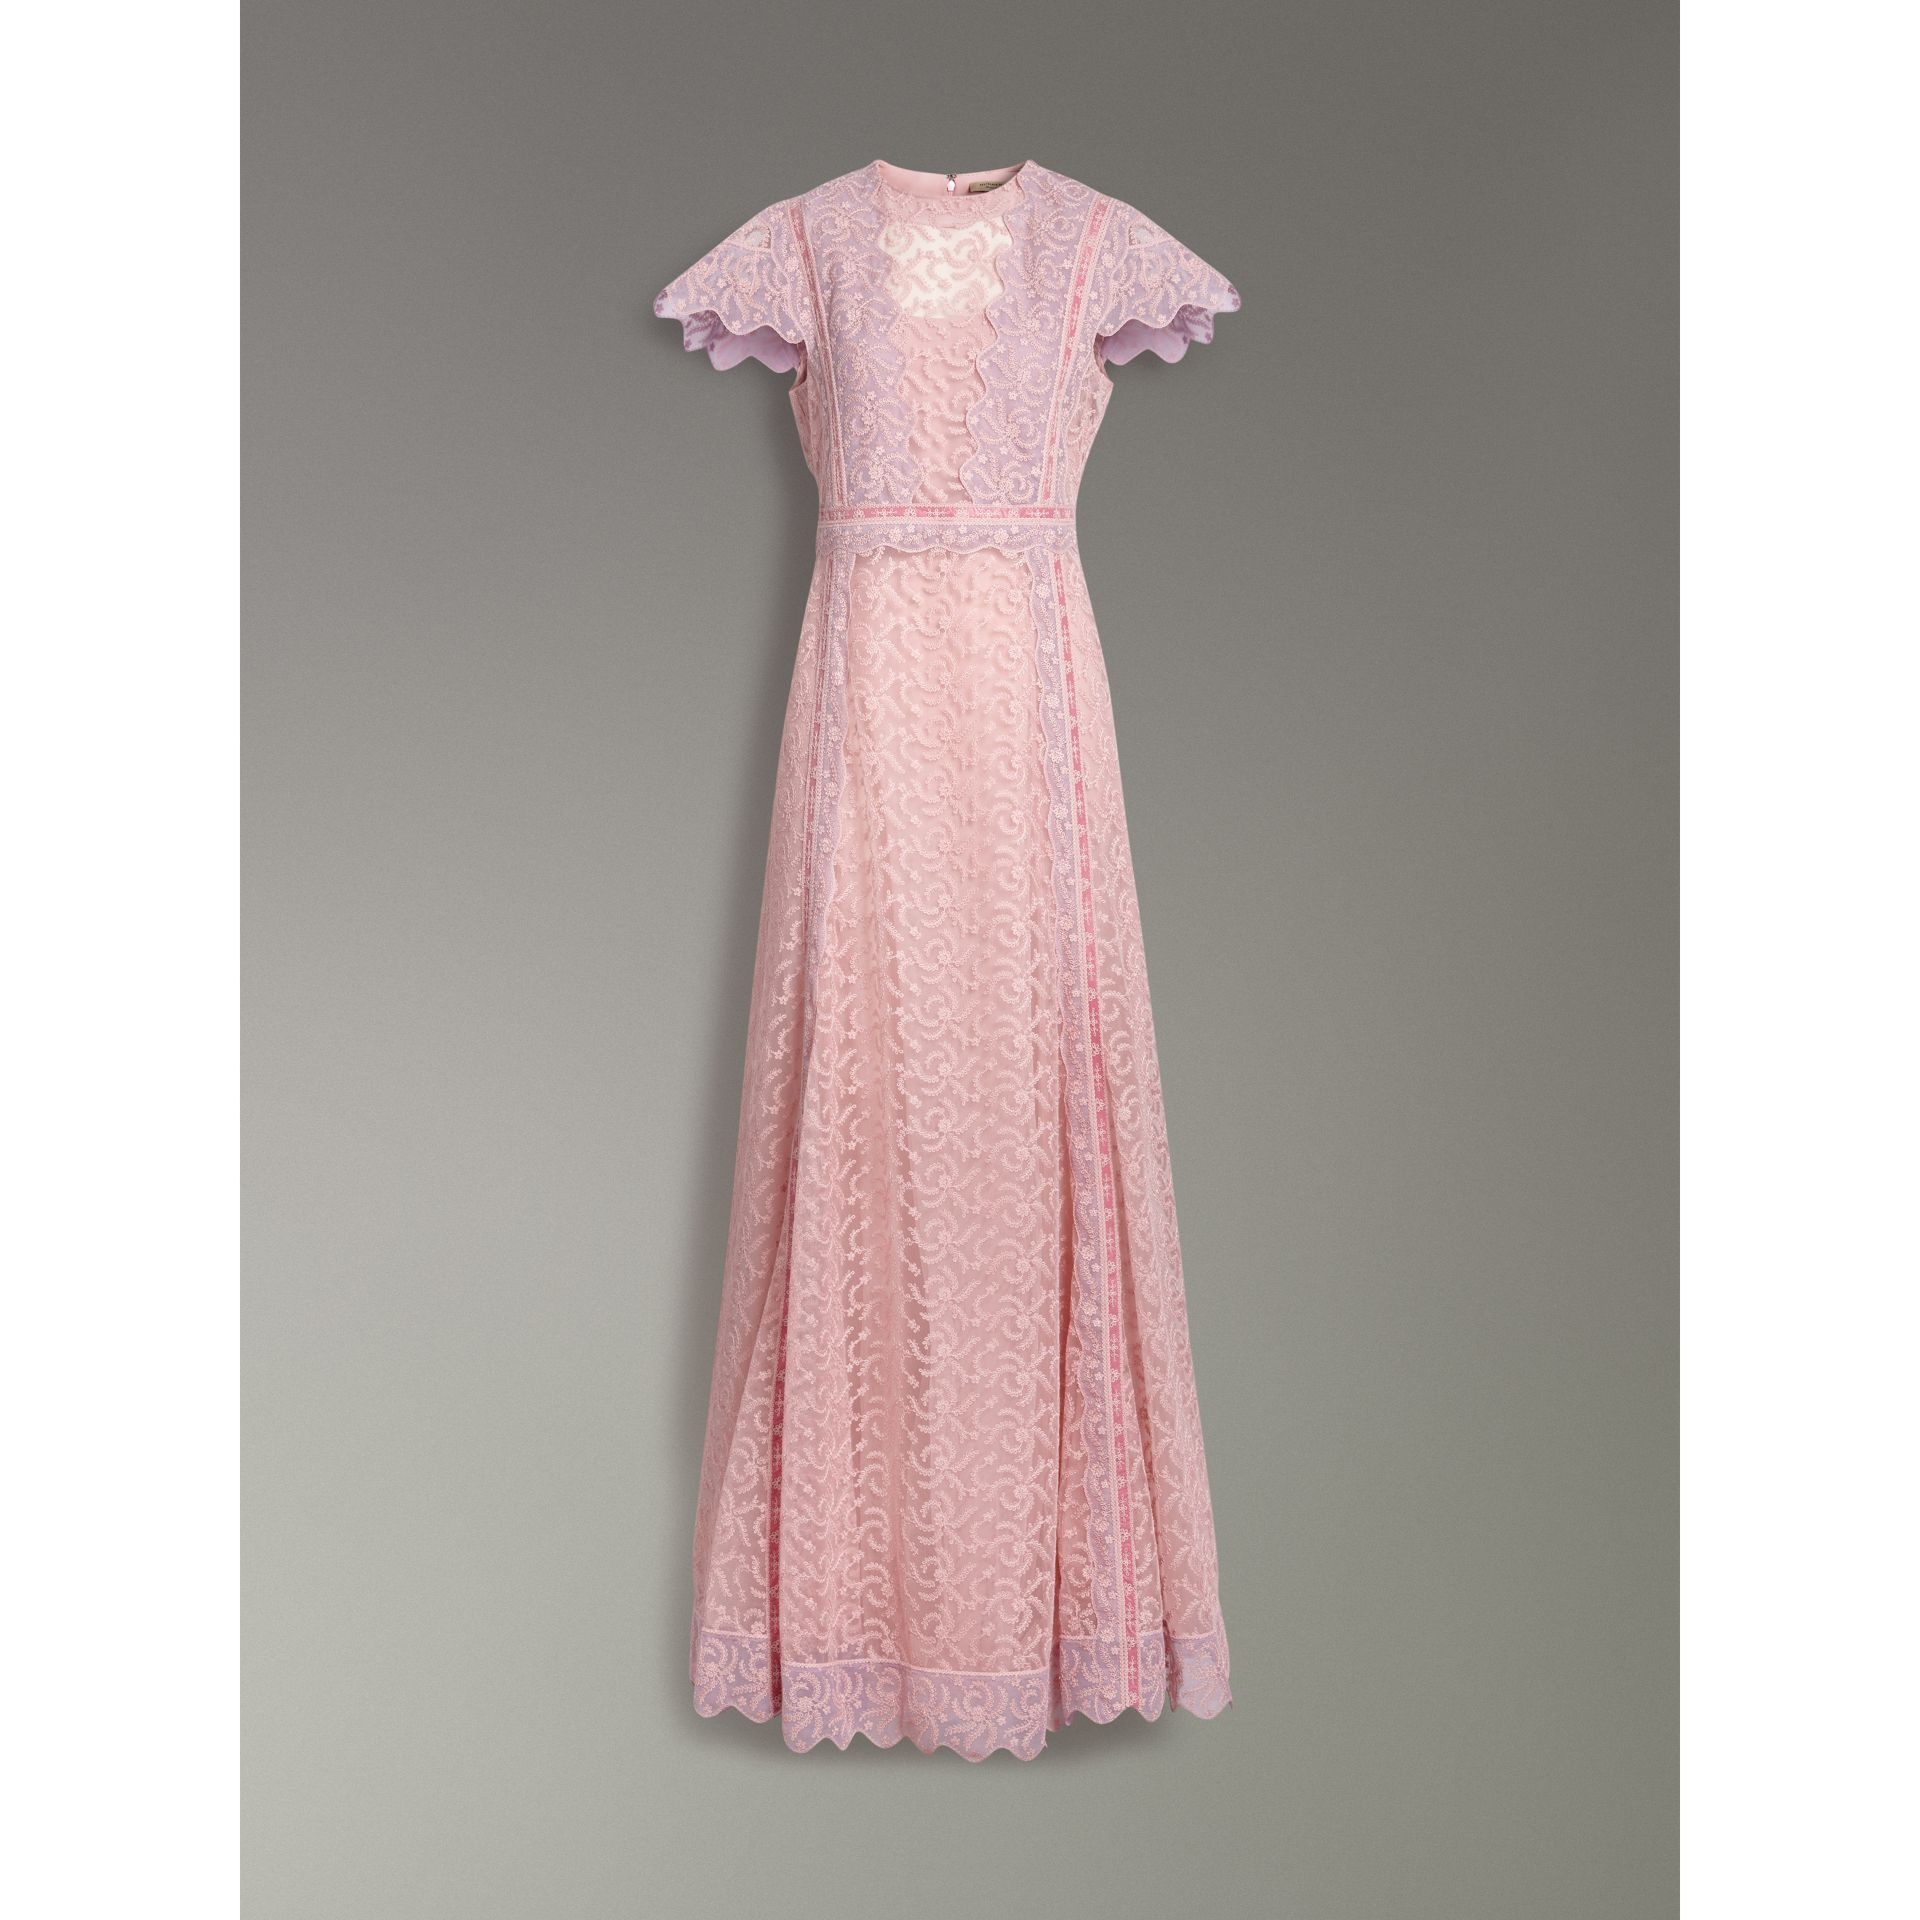 Embroidered Floral Lace and Tulle Dress in Pale Pink - Women | Burberry - gallery image 3